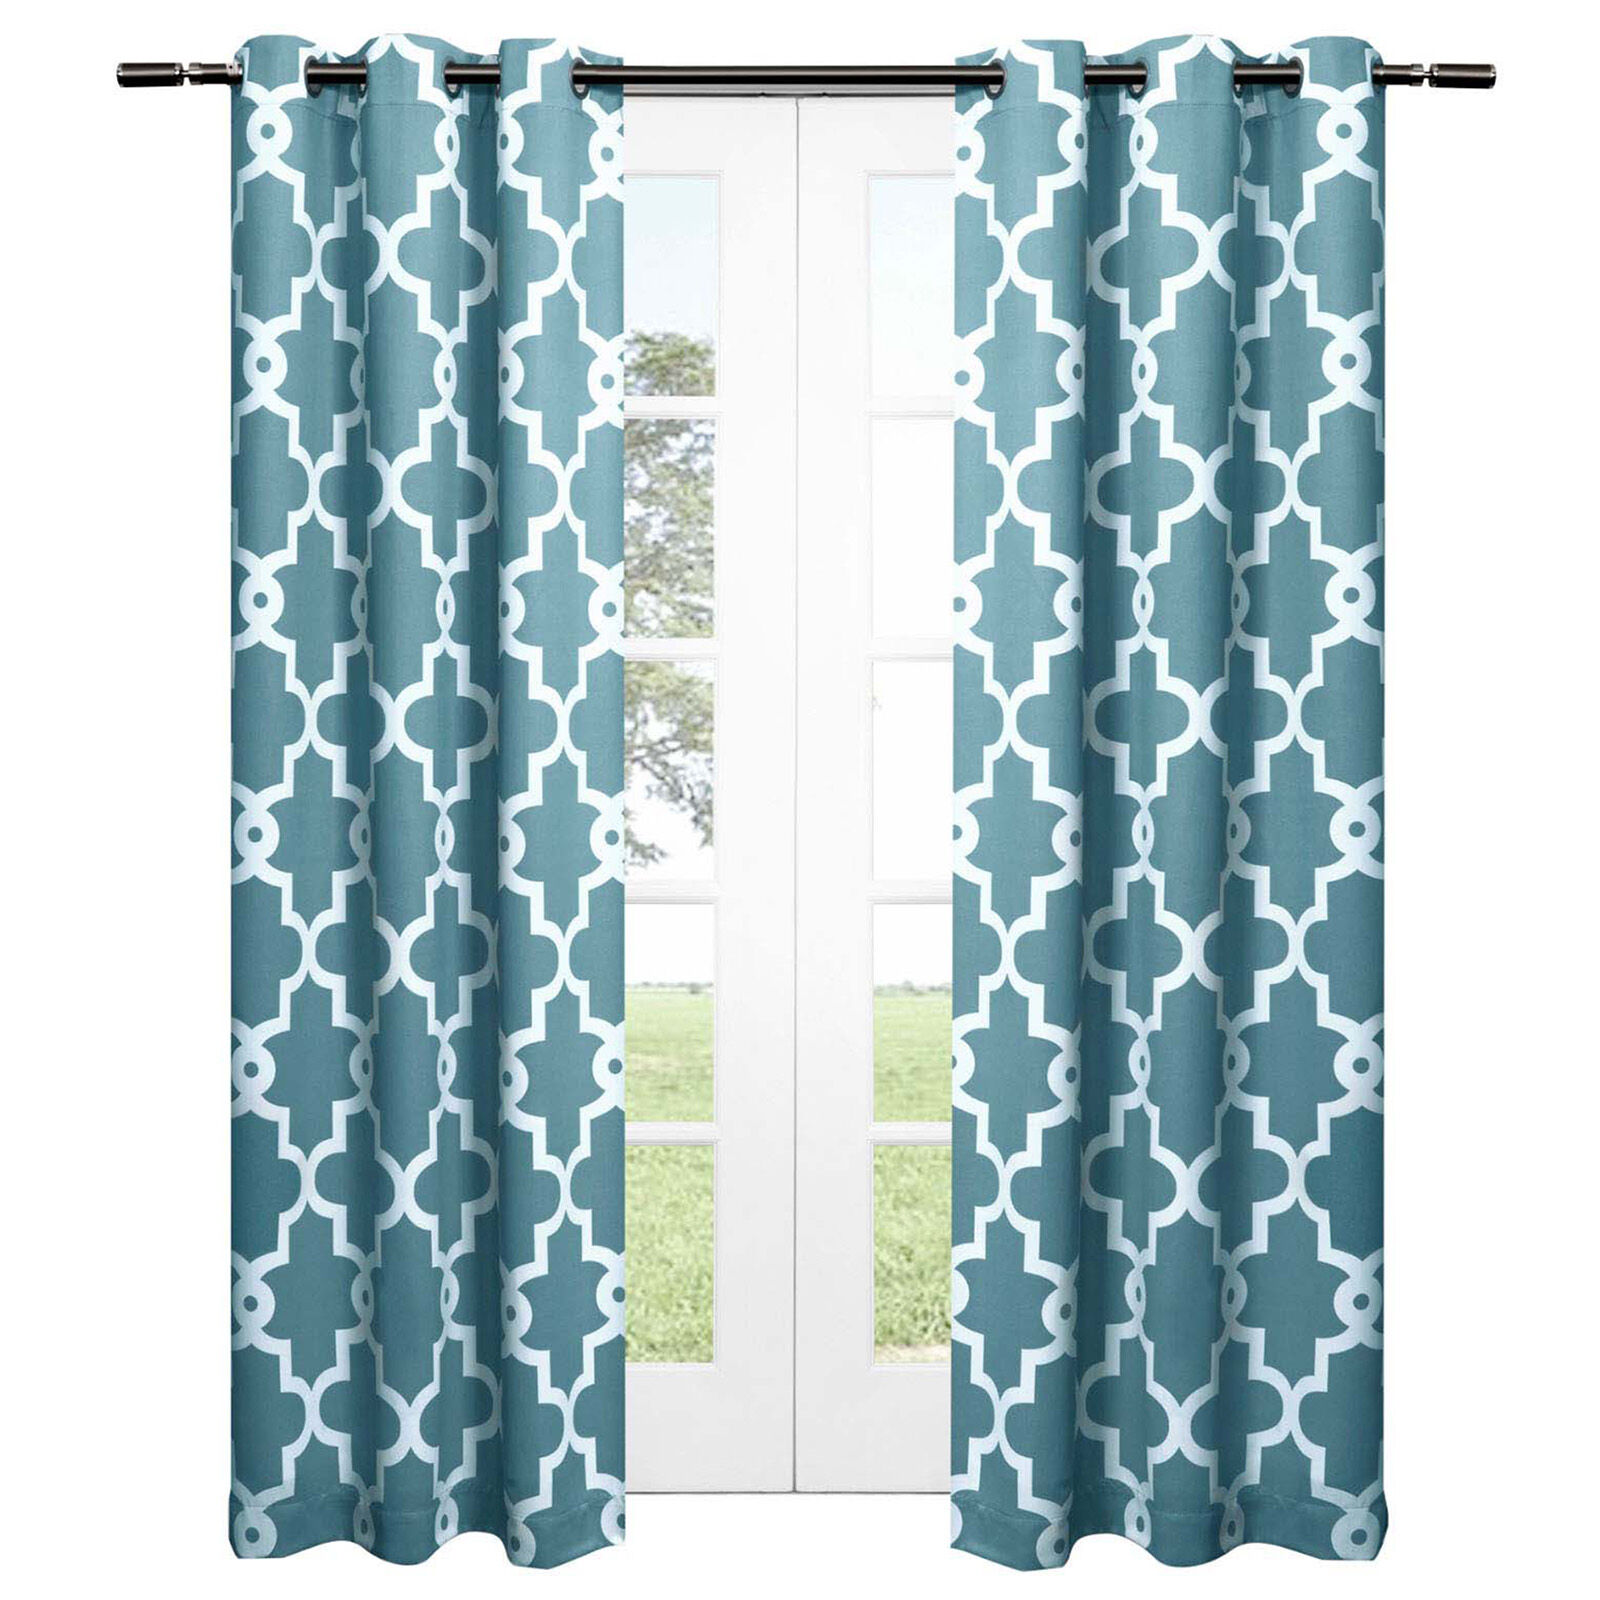 Black And White Chevron Blackout Curtains Teal Ironwork Blackout Curtain 84 In At Home